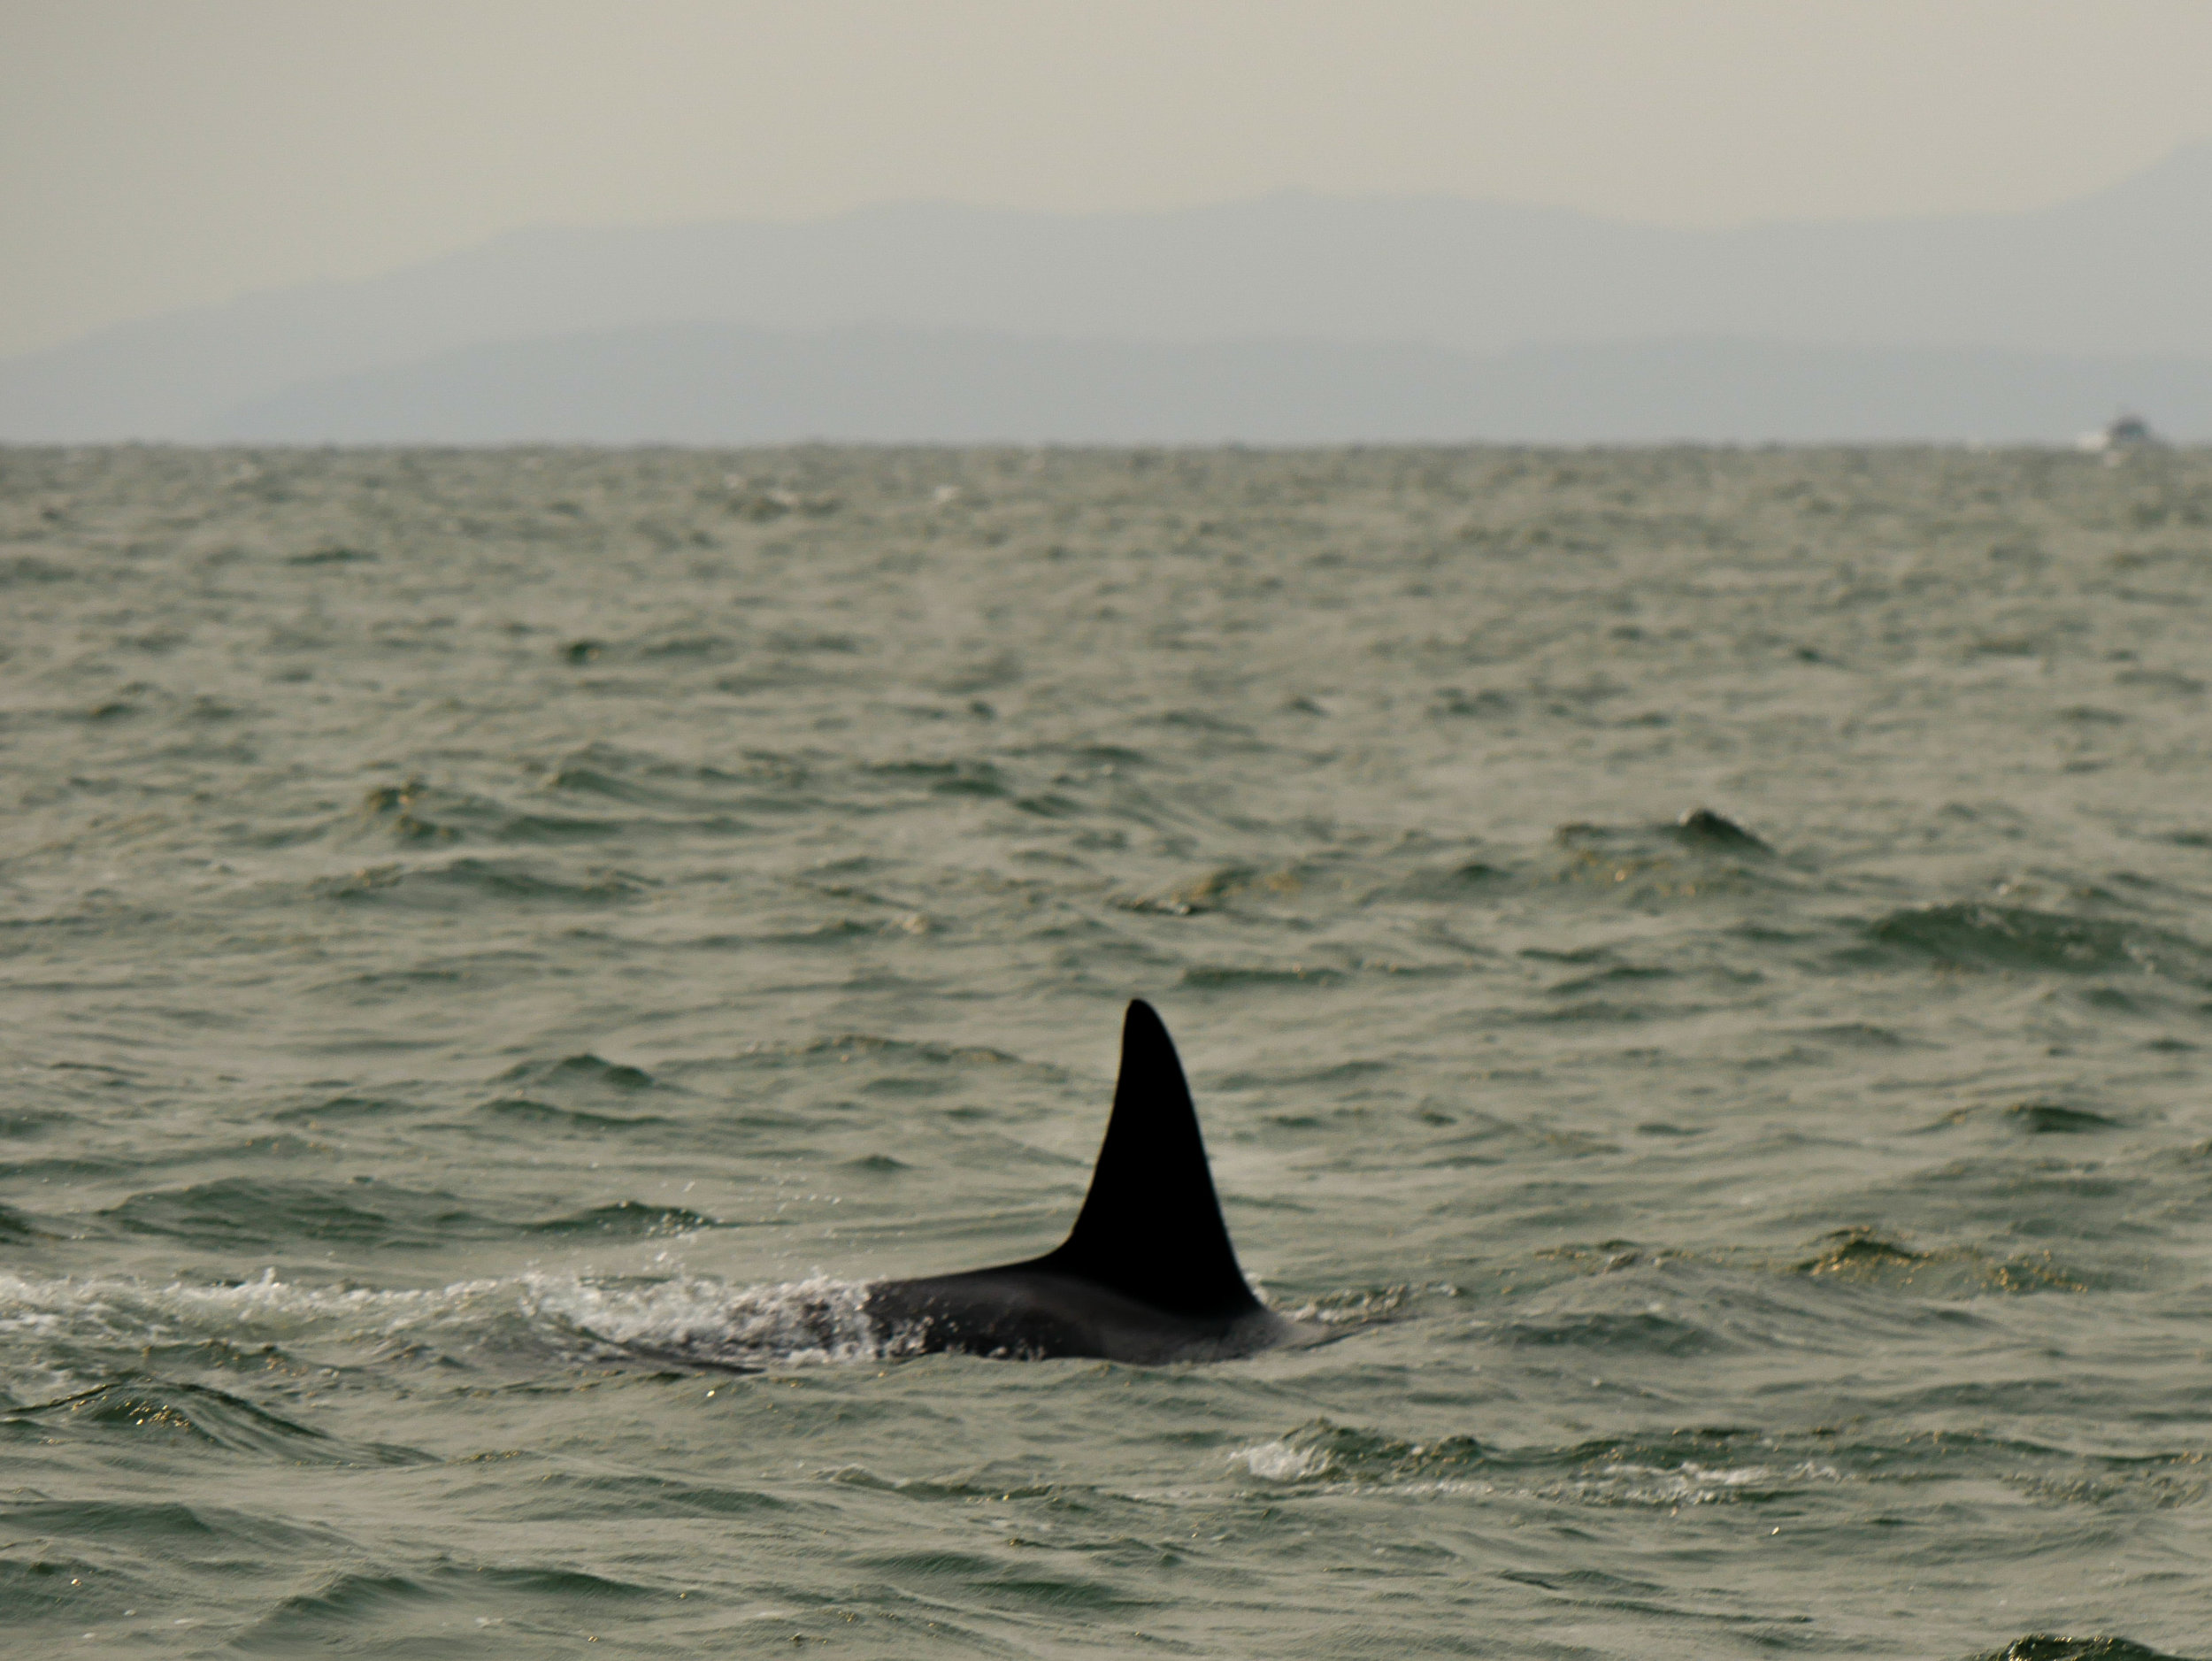 Orca dorsal fins come in all different shapes and sizes! Photo by Rodrigo Menezes - 10:30 tour.